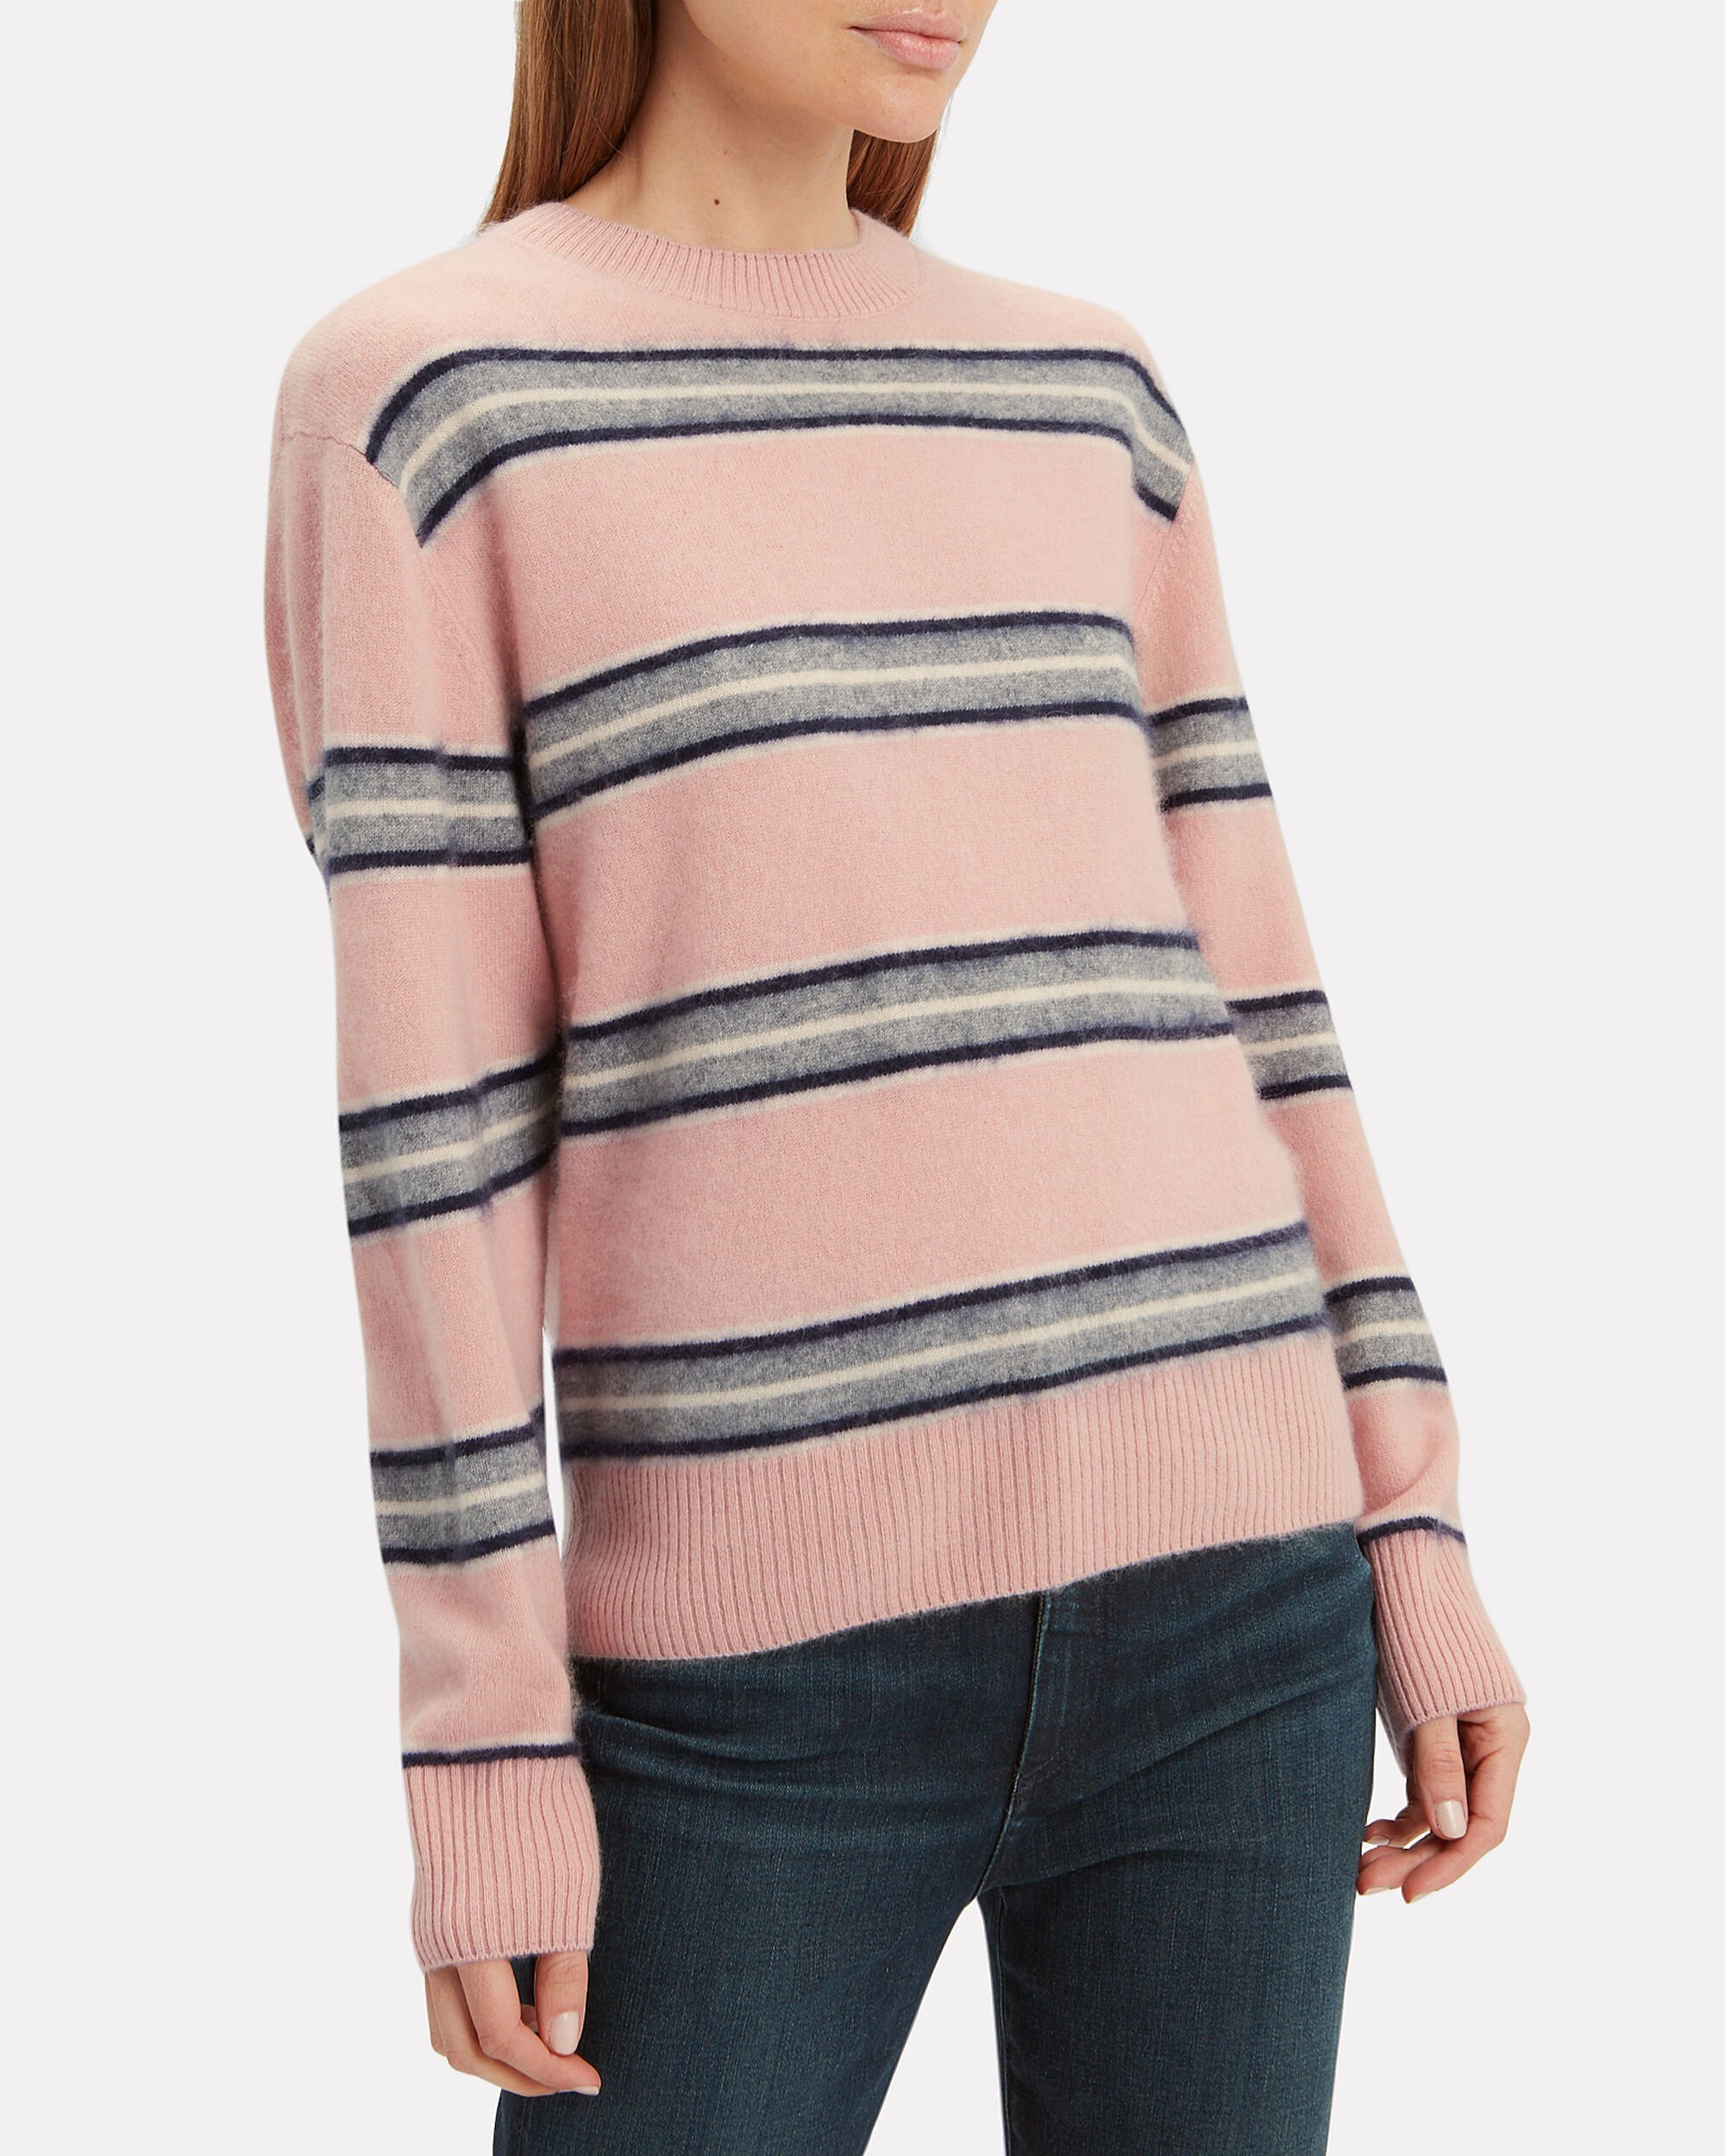 Salene Striped Cashmere Sweater, BLUSH, hi-res